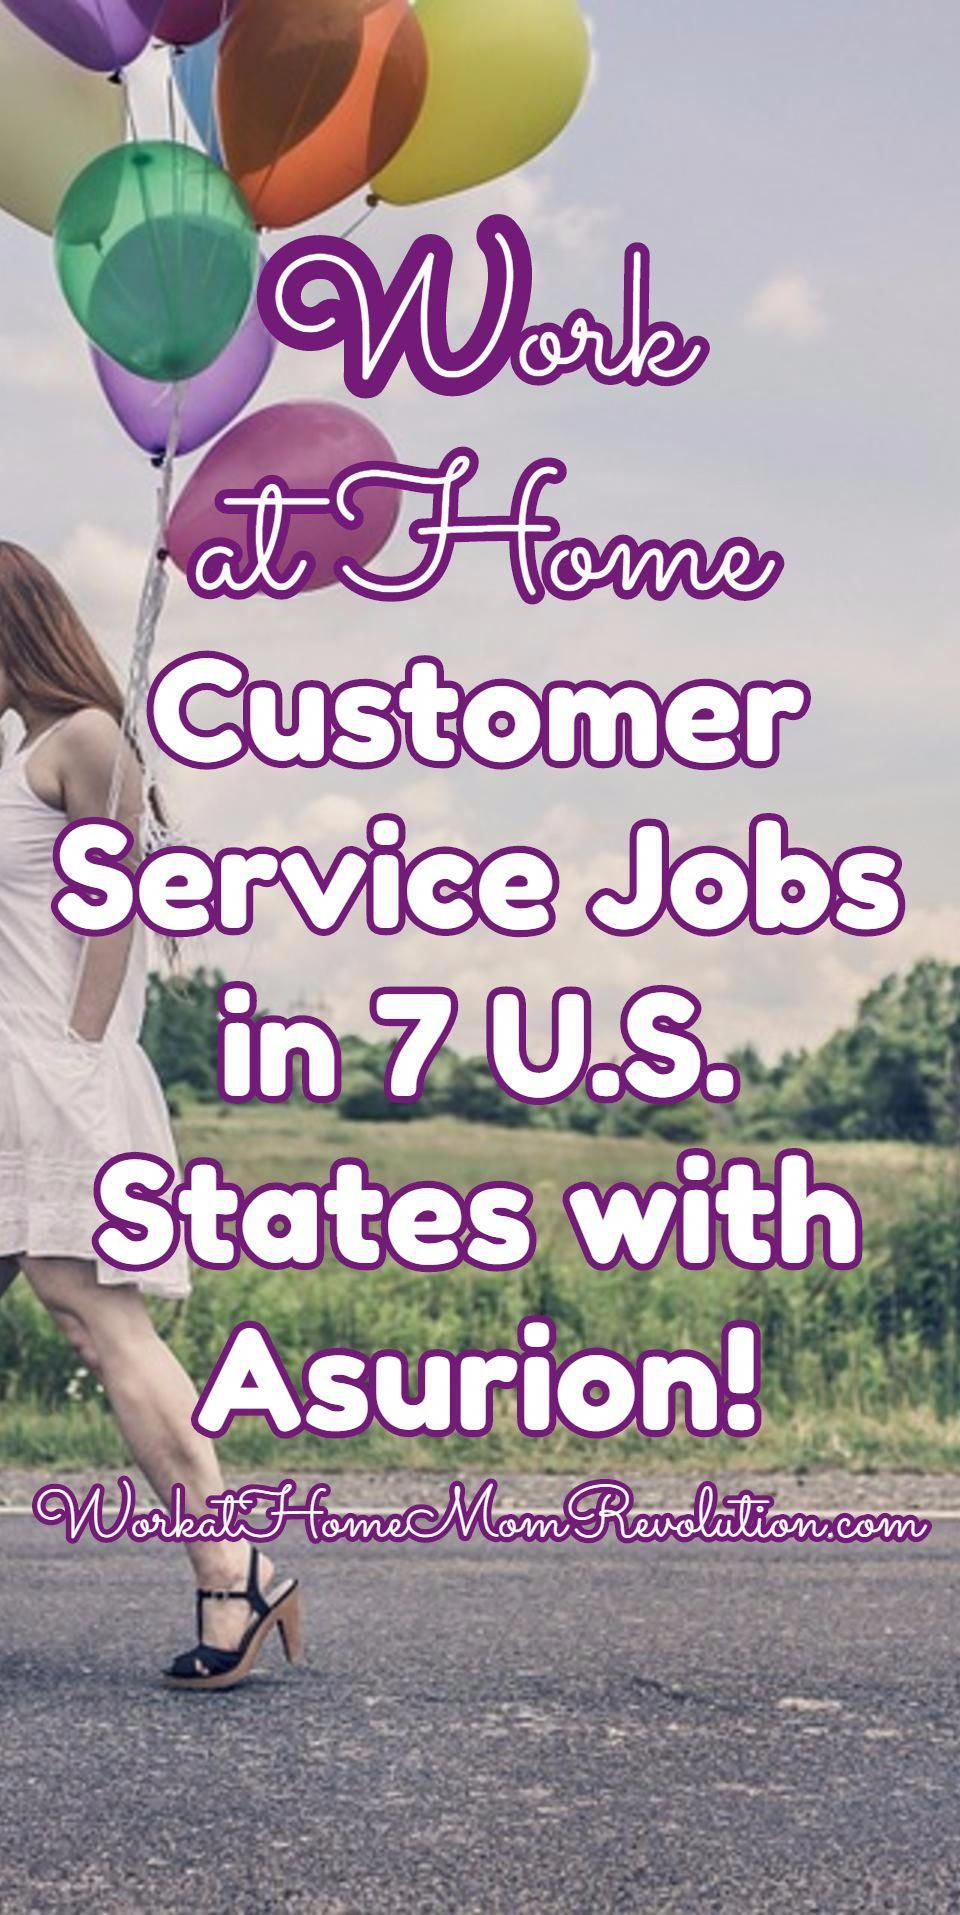 Work at Home Customer Service Jobs in 7 U.S. States with Asurion! Asurion is hiring work at home customer support agents in 7 U.S. states!